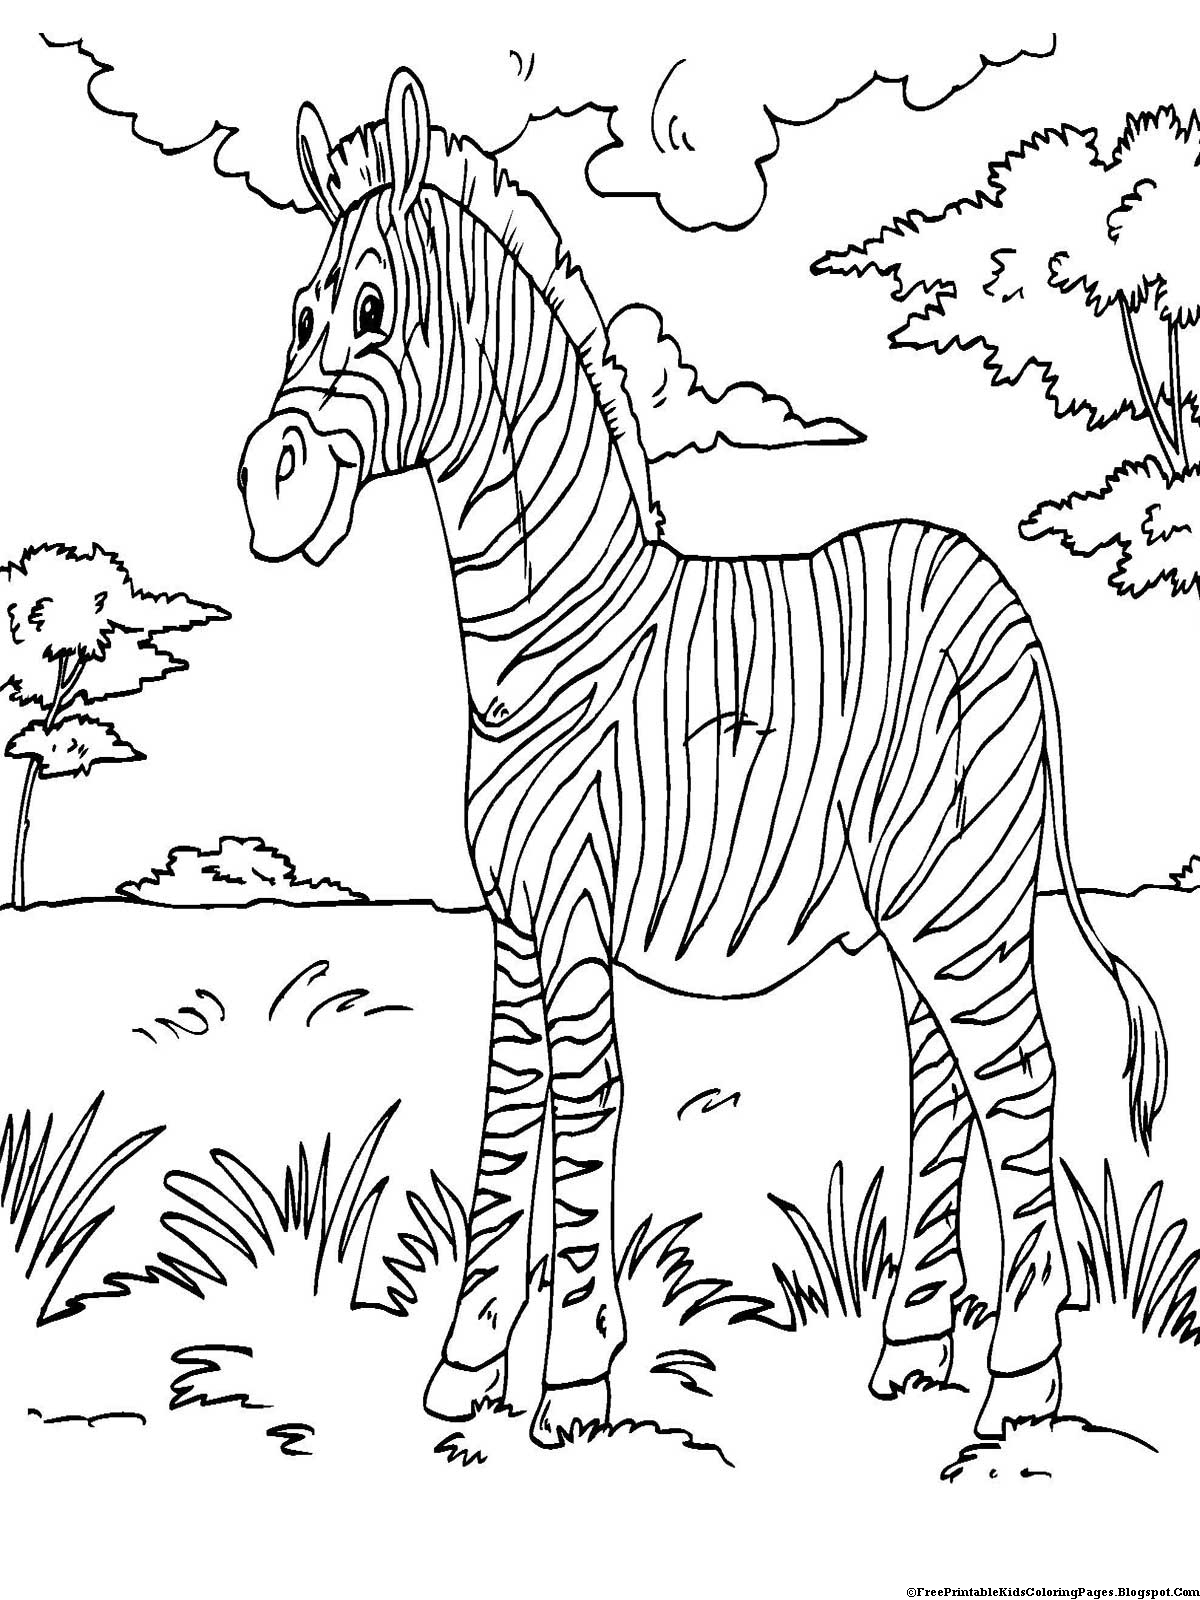 coloring animal for kids animal coloring pages for kids for coloring animal kids